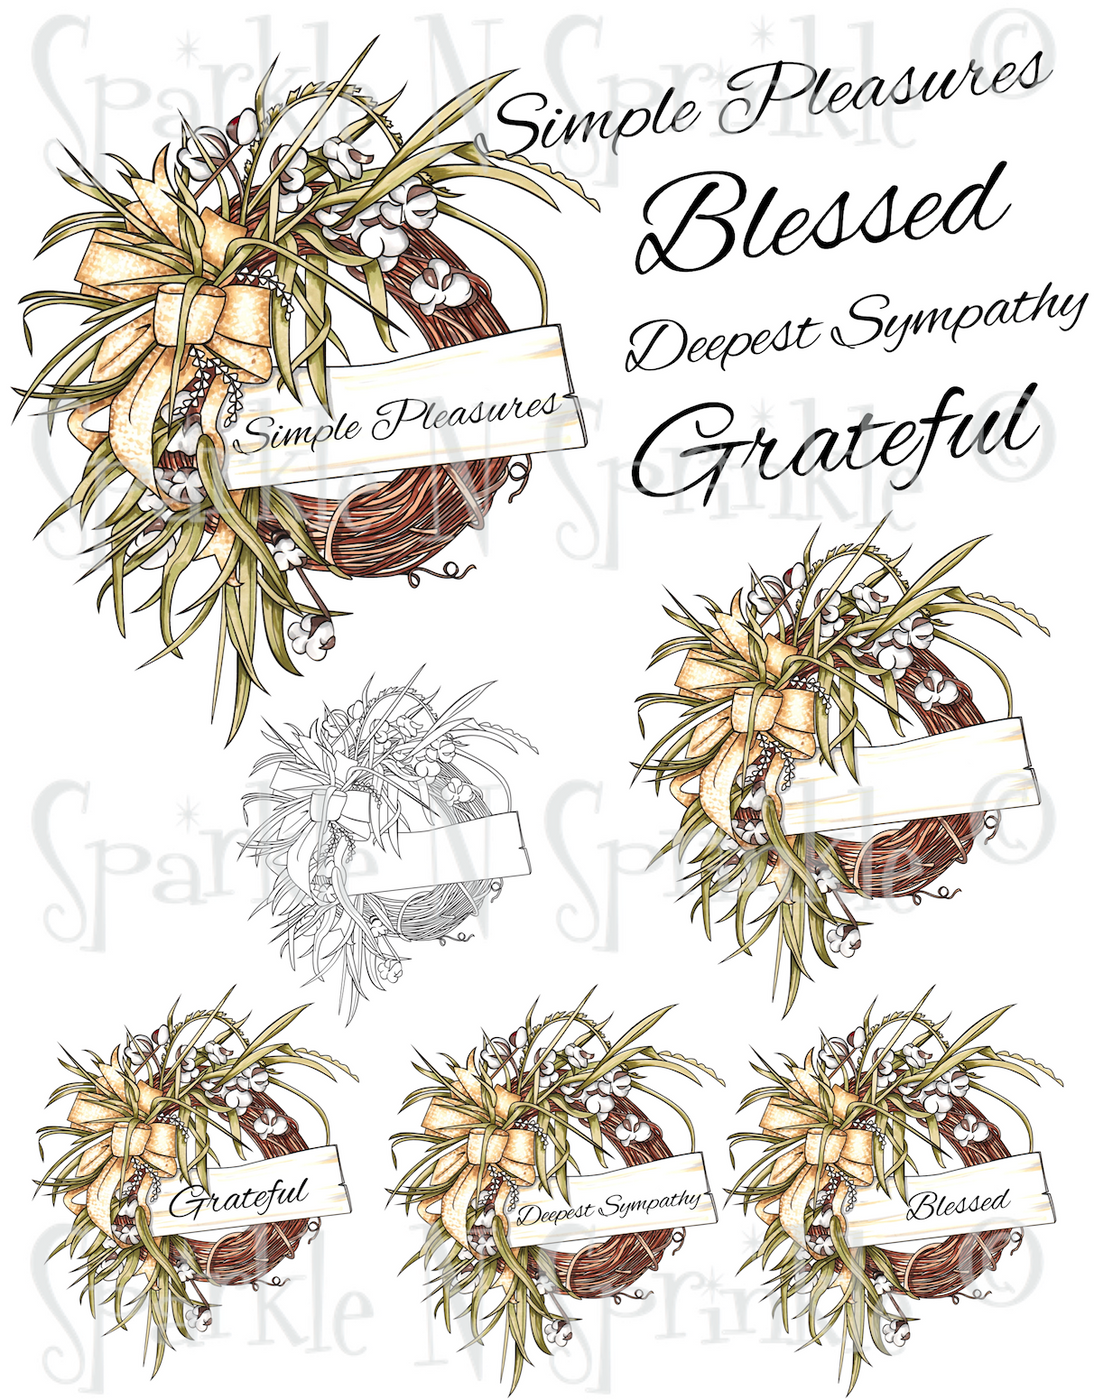 Fall Cotton Wreath Digital Stamp Set [DIGI3150J]